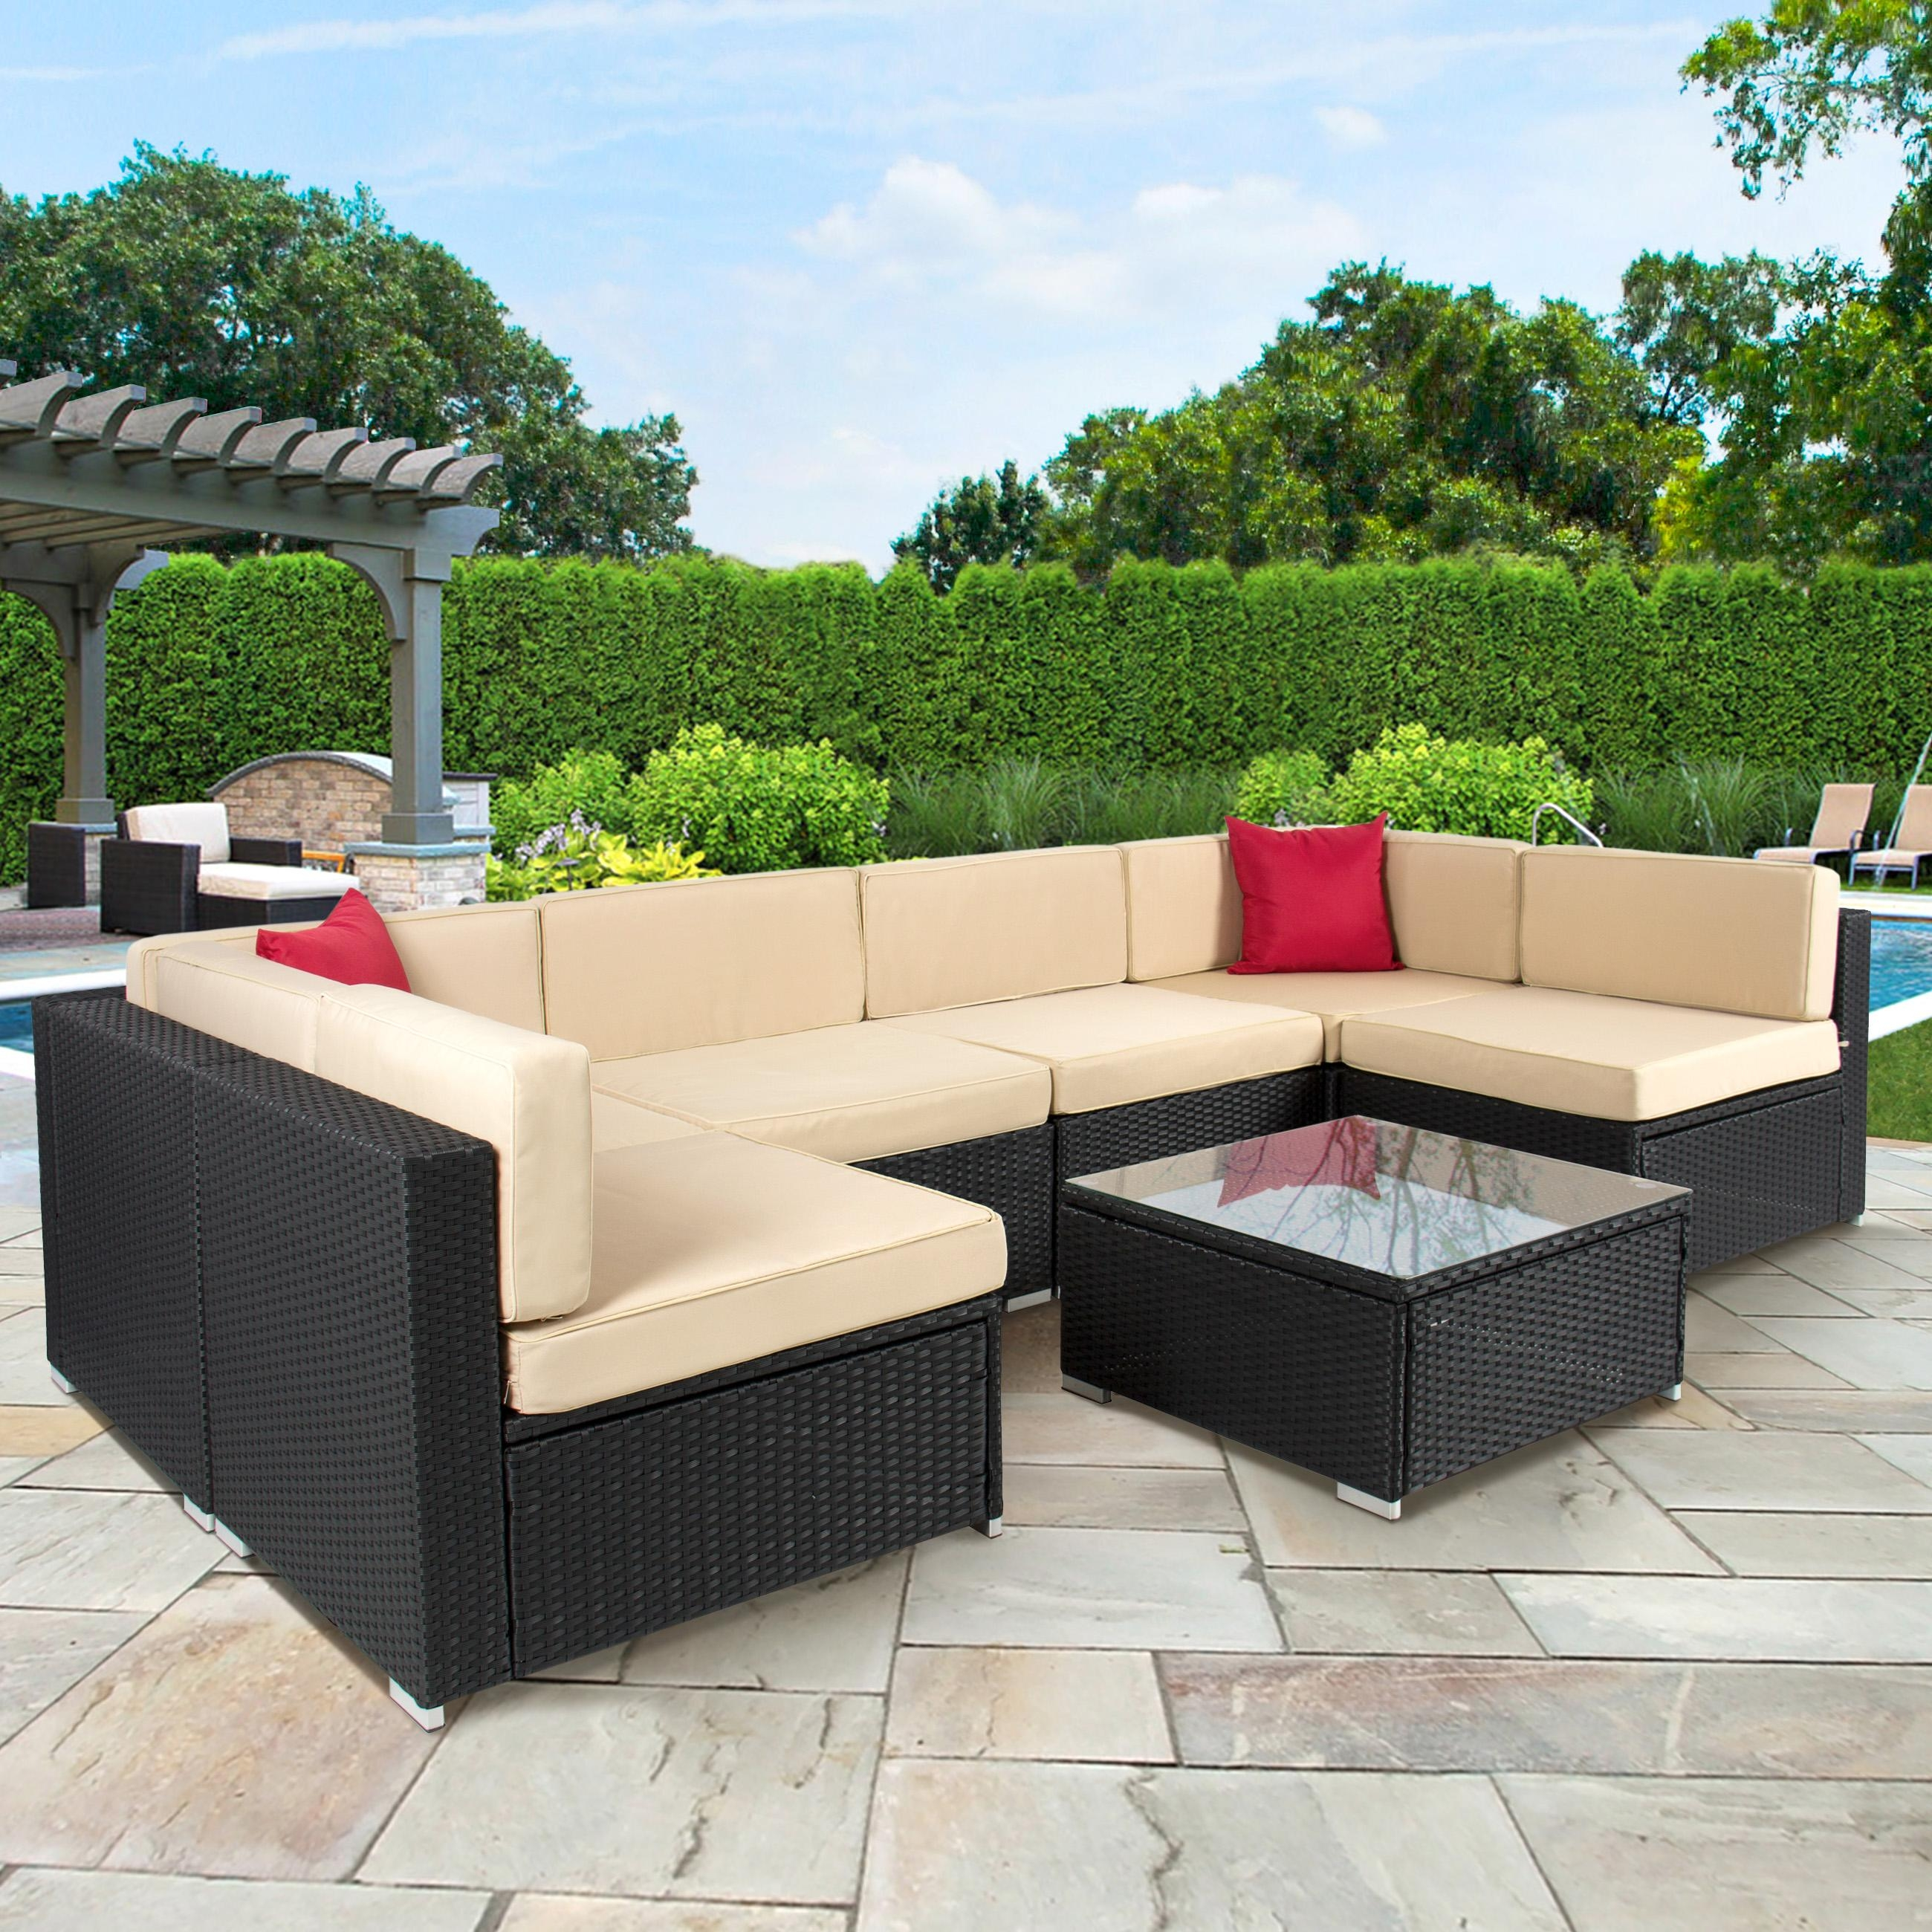 Best Choice Products Outdoor Garden Patio 4Pc Cushioned Seat Black Throughout Black Wicker Sofas (View 4 of 20)